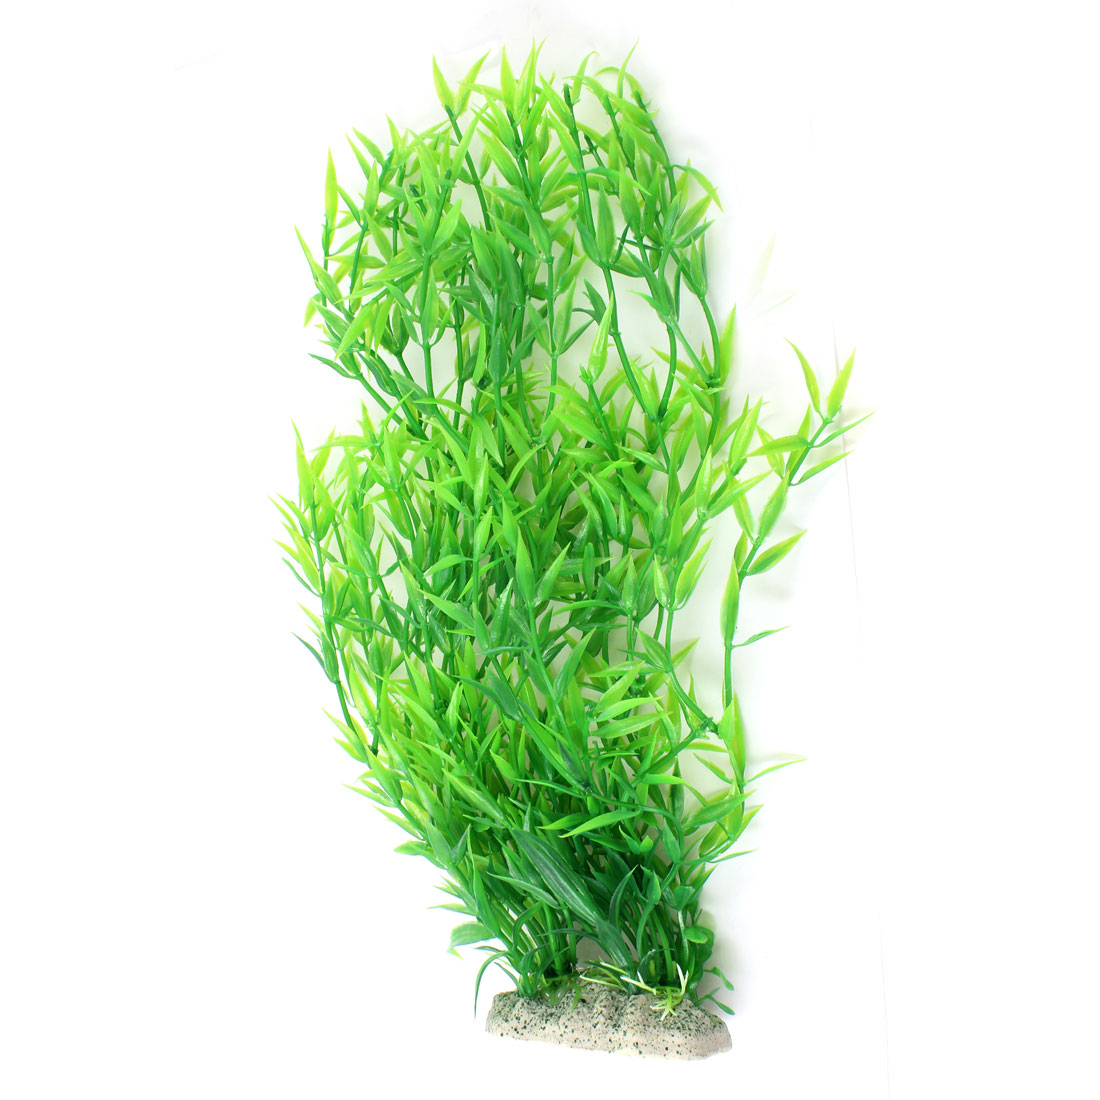 "13"" Height Green Plastic Underwater Grass Ornament for Fish Tank"